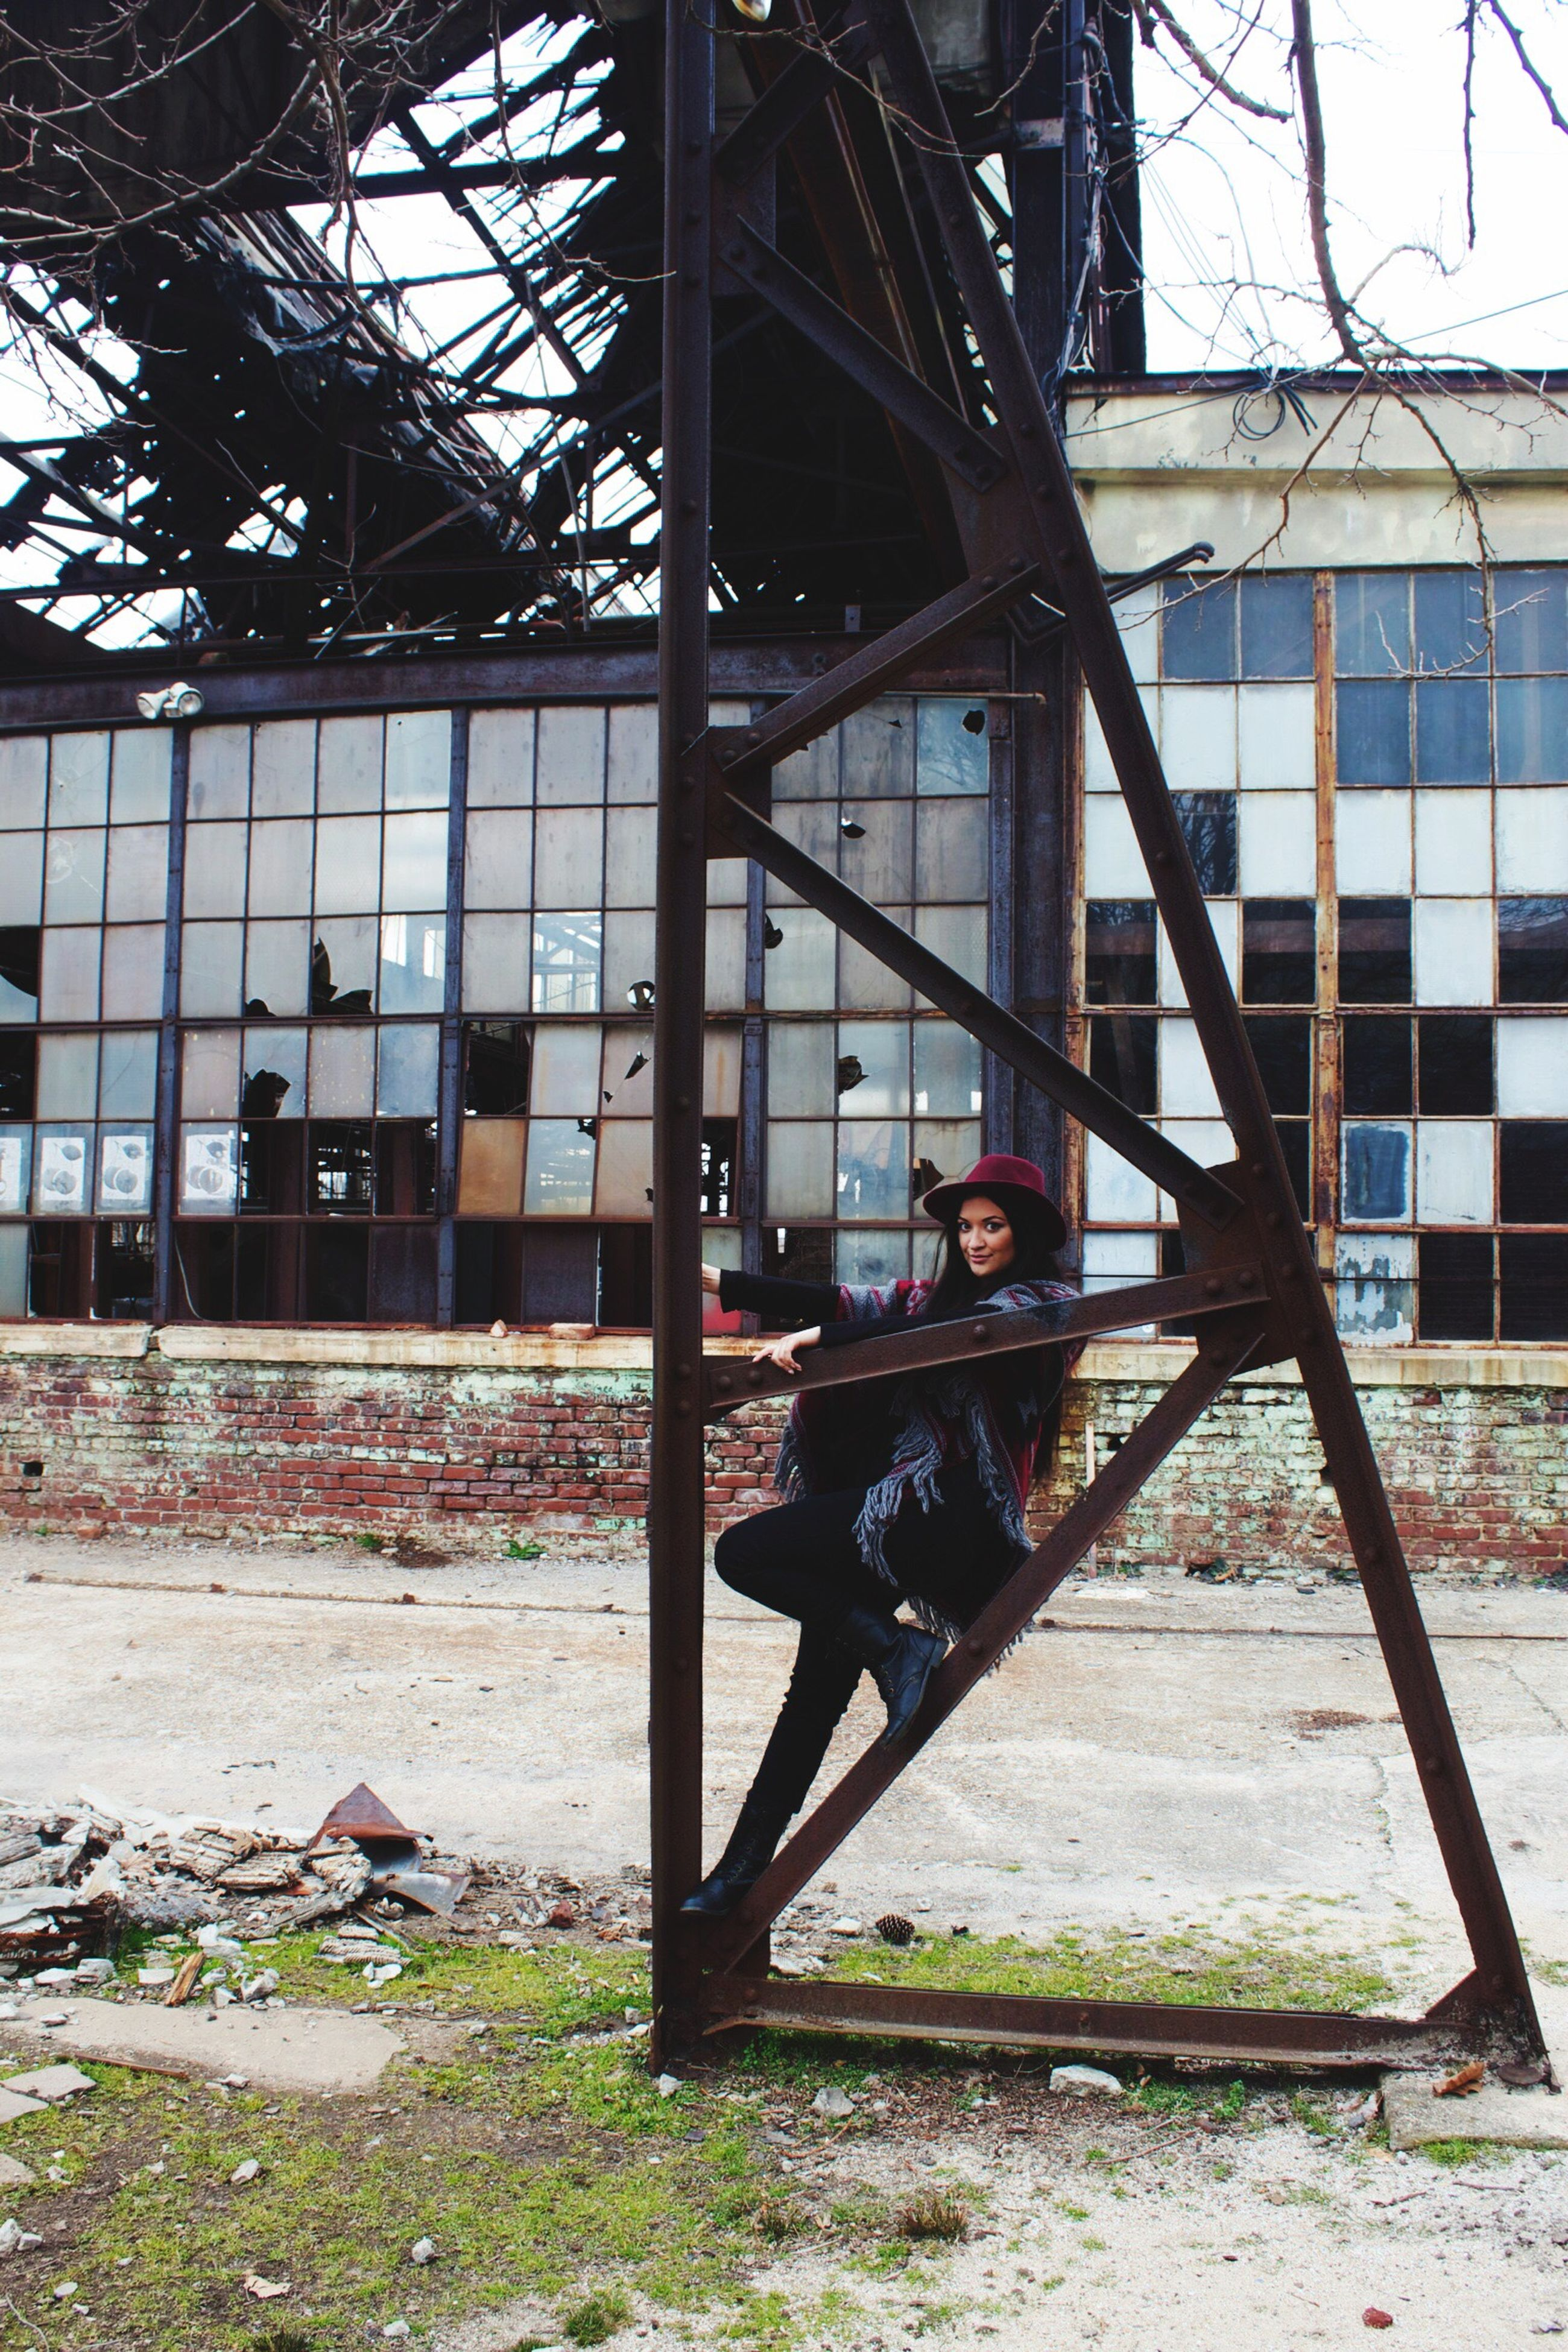 architecture, built structure, building exterior, lifestyles, leisure activity, window, person, young adult, abandoned, day, standing, full length, casual clothing, building, damaged, graffiti, bare tree, glass - material